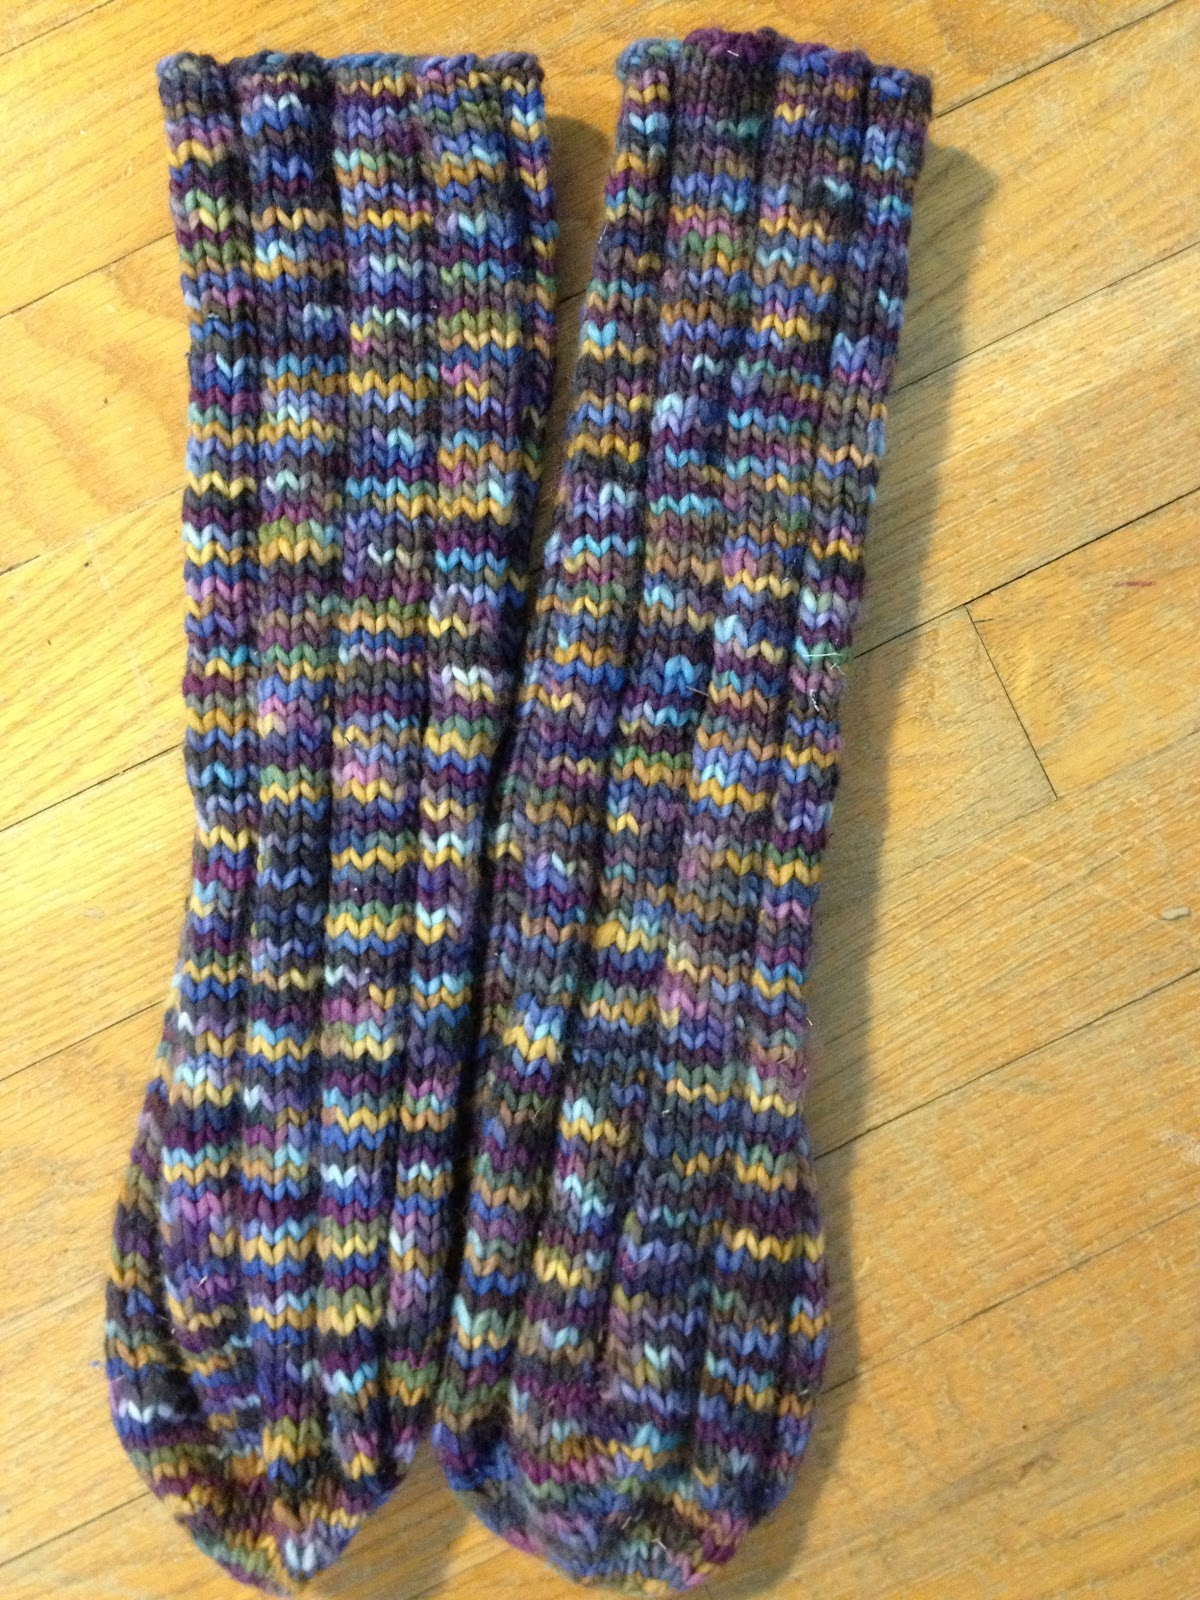 Knitting Tube Socks Free Pattern : Cats and Crafts: Knitted Purple Faux Cable Hat + Tube Socks